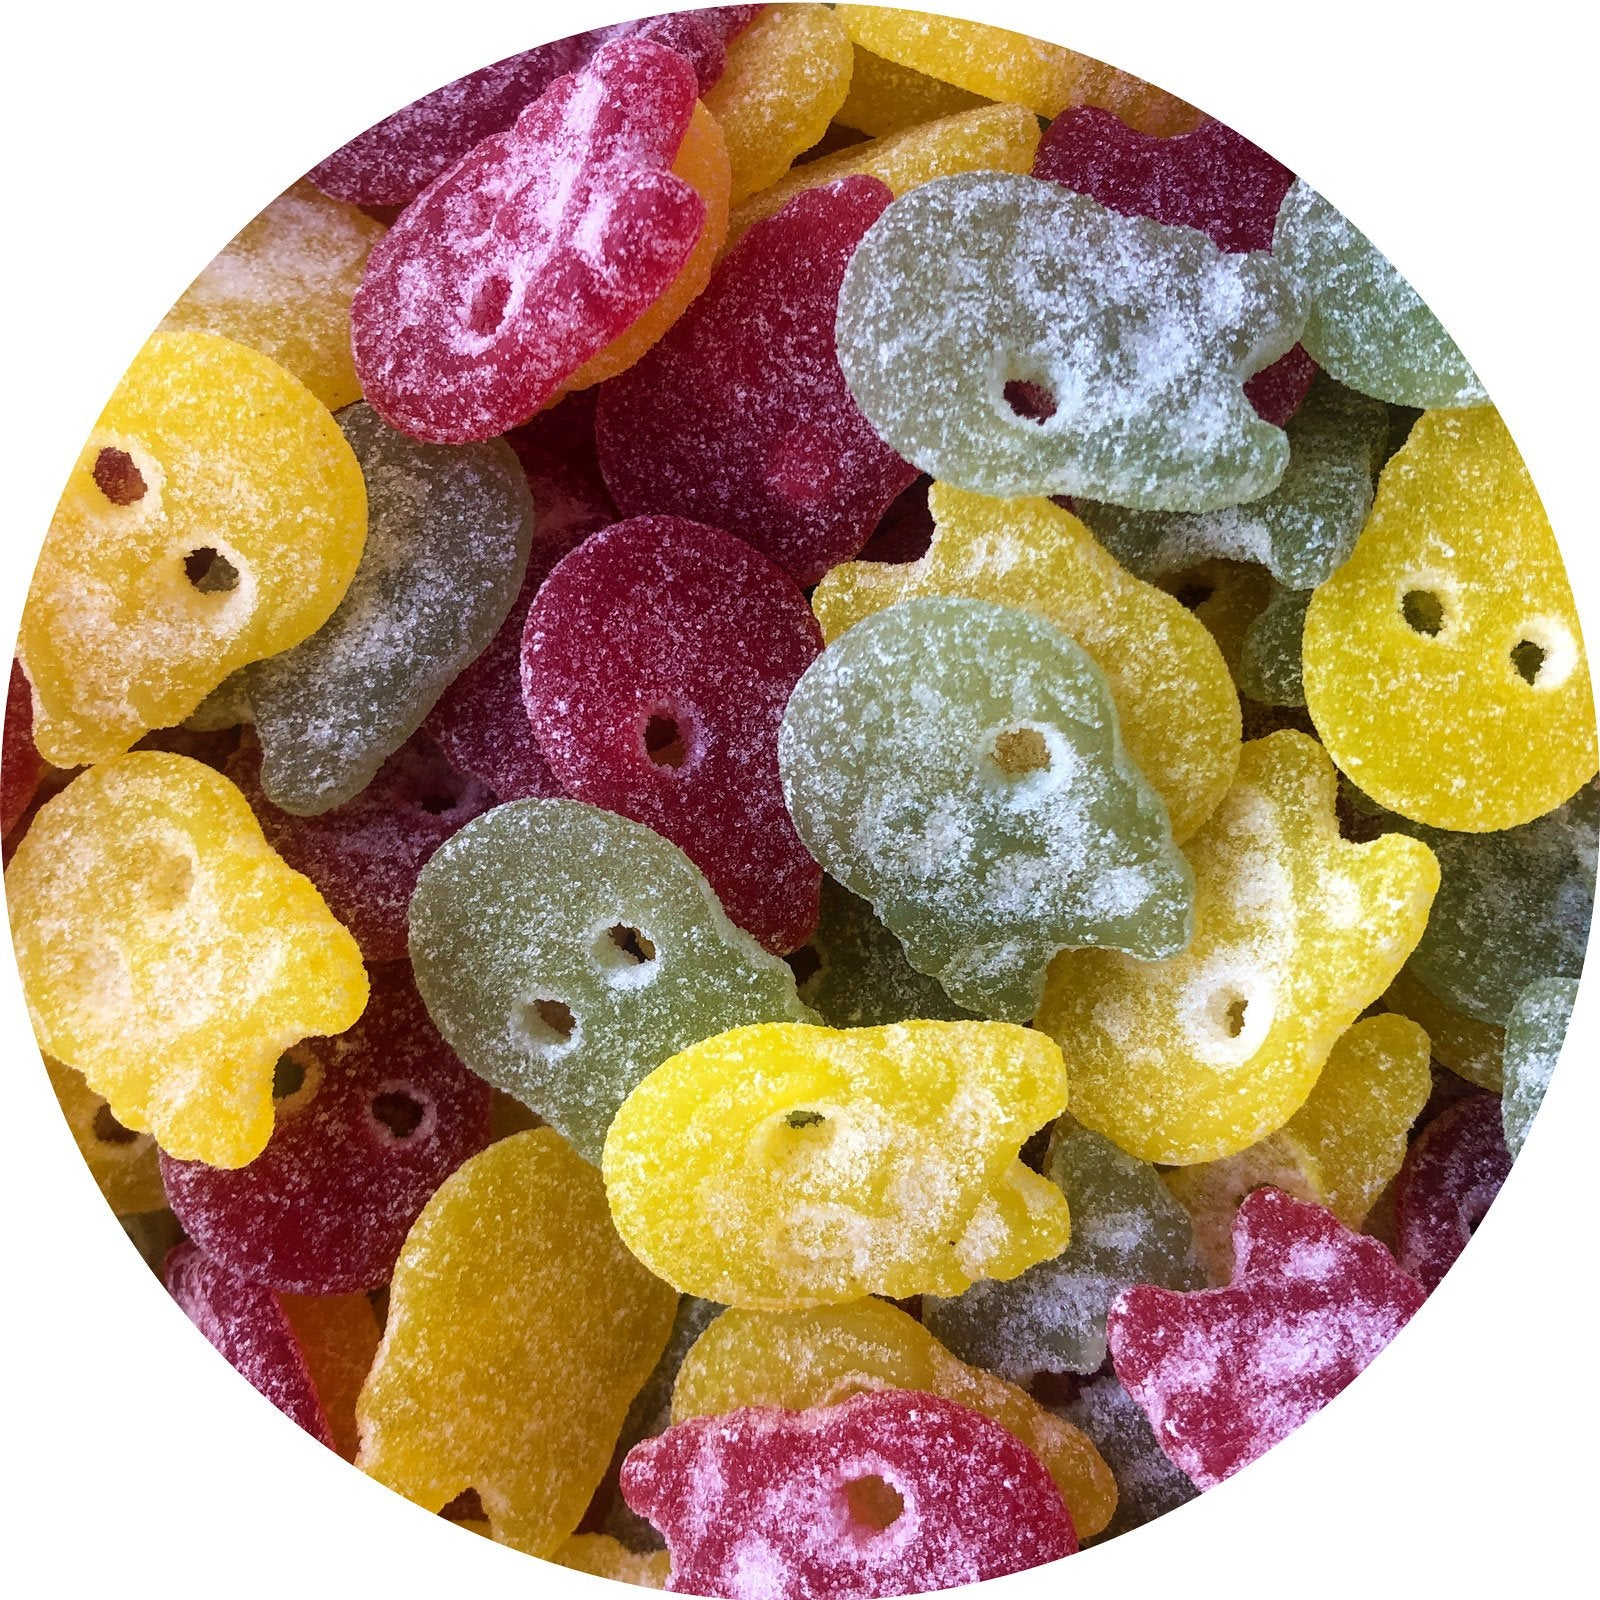 Sour Skull Mix - Vegan Sweets